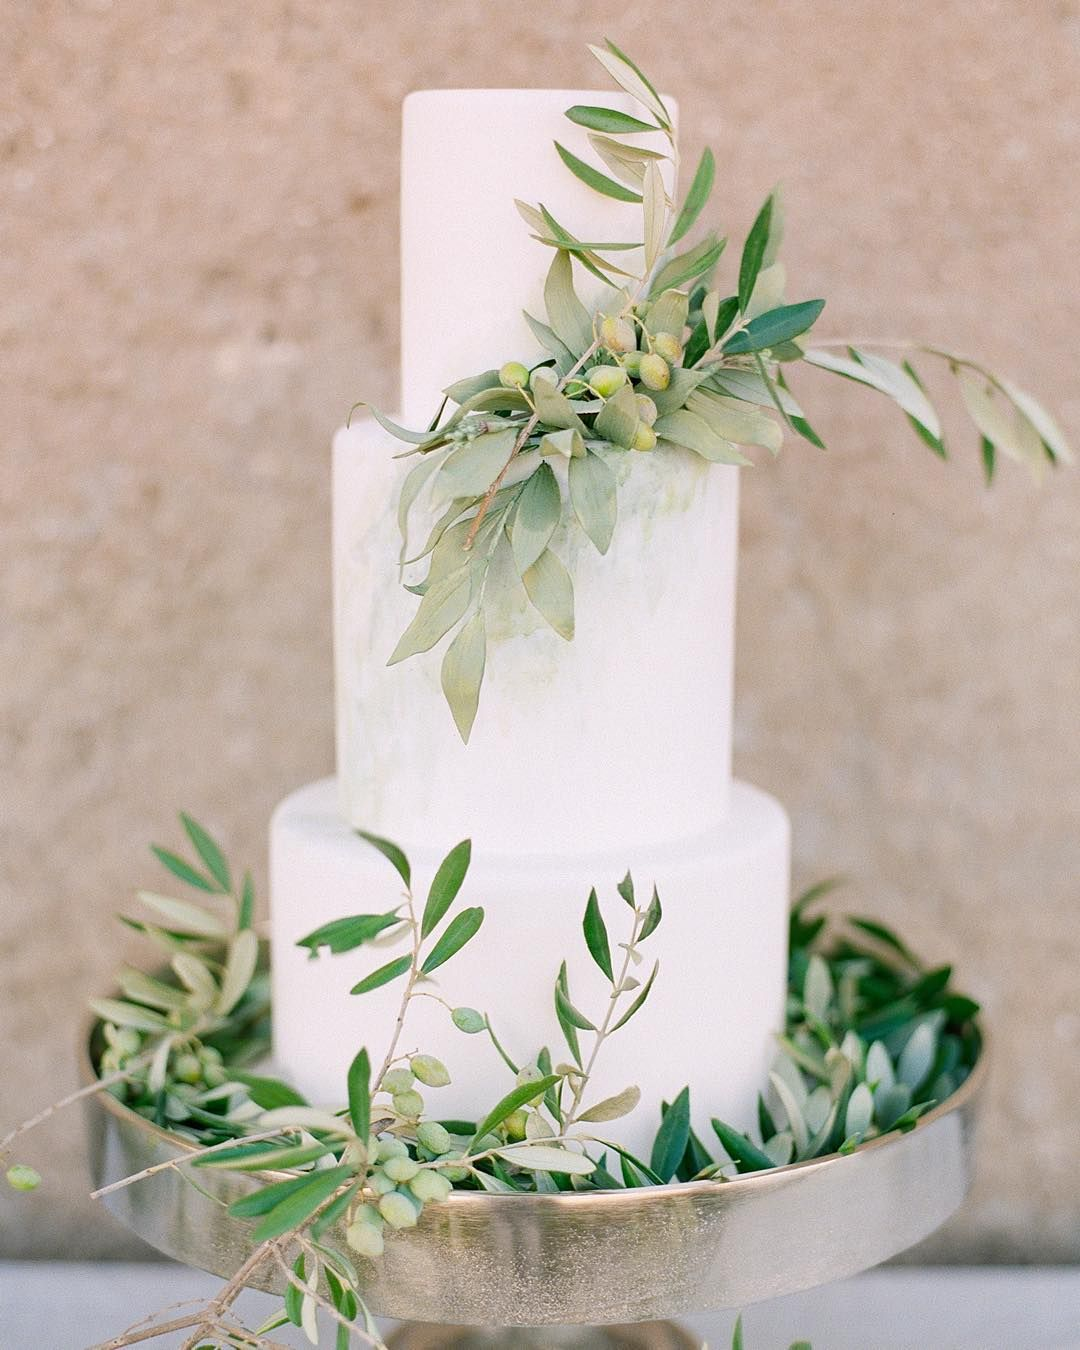 Olive Branch Decorated Wedding Cake @artiesestudios on ...